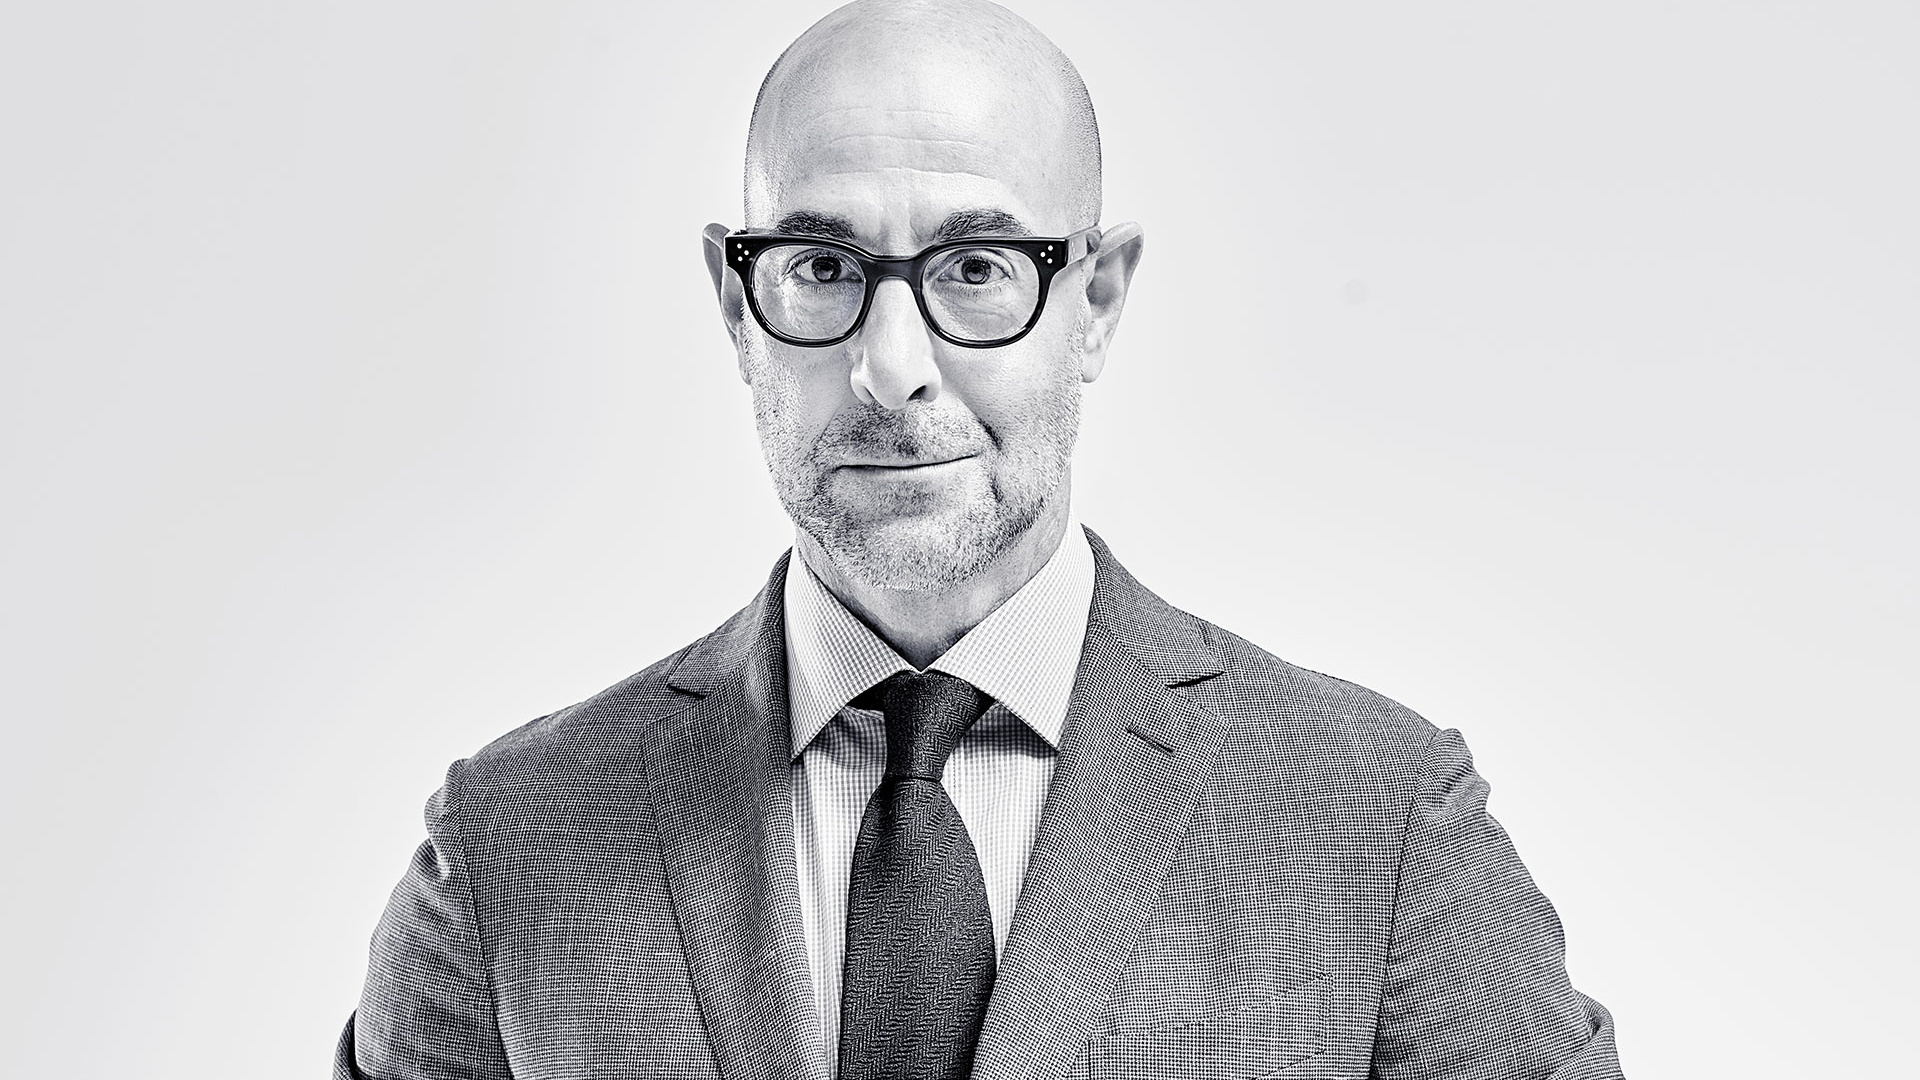 Stanley Tucci at Tun Yard Studios. Photograph by David Ellis